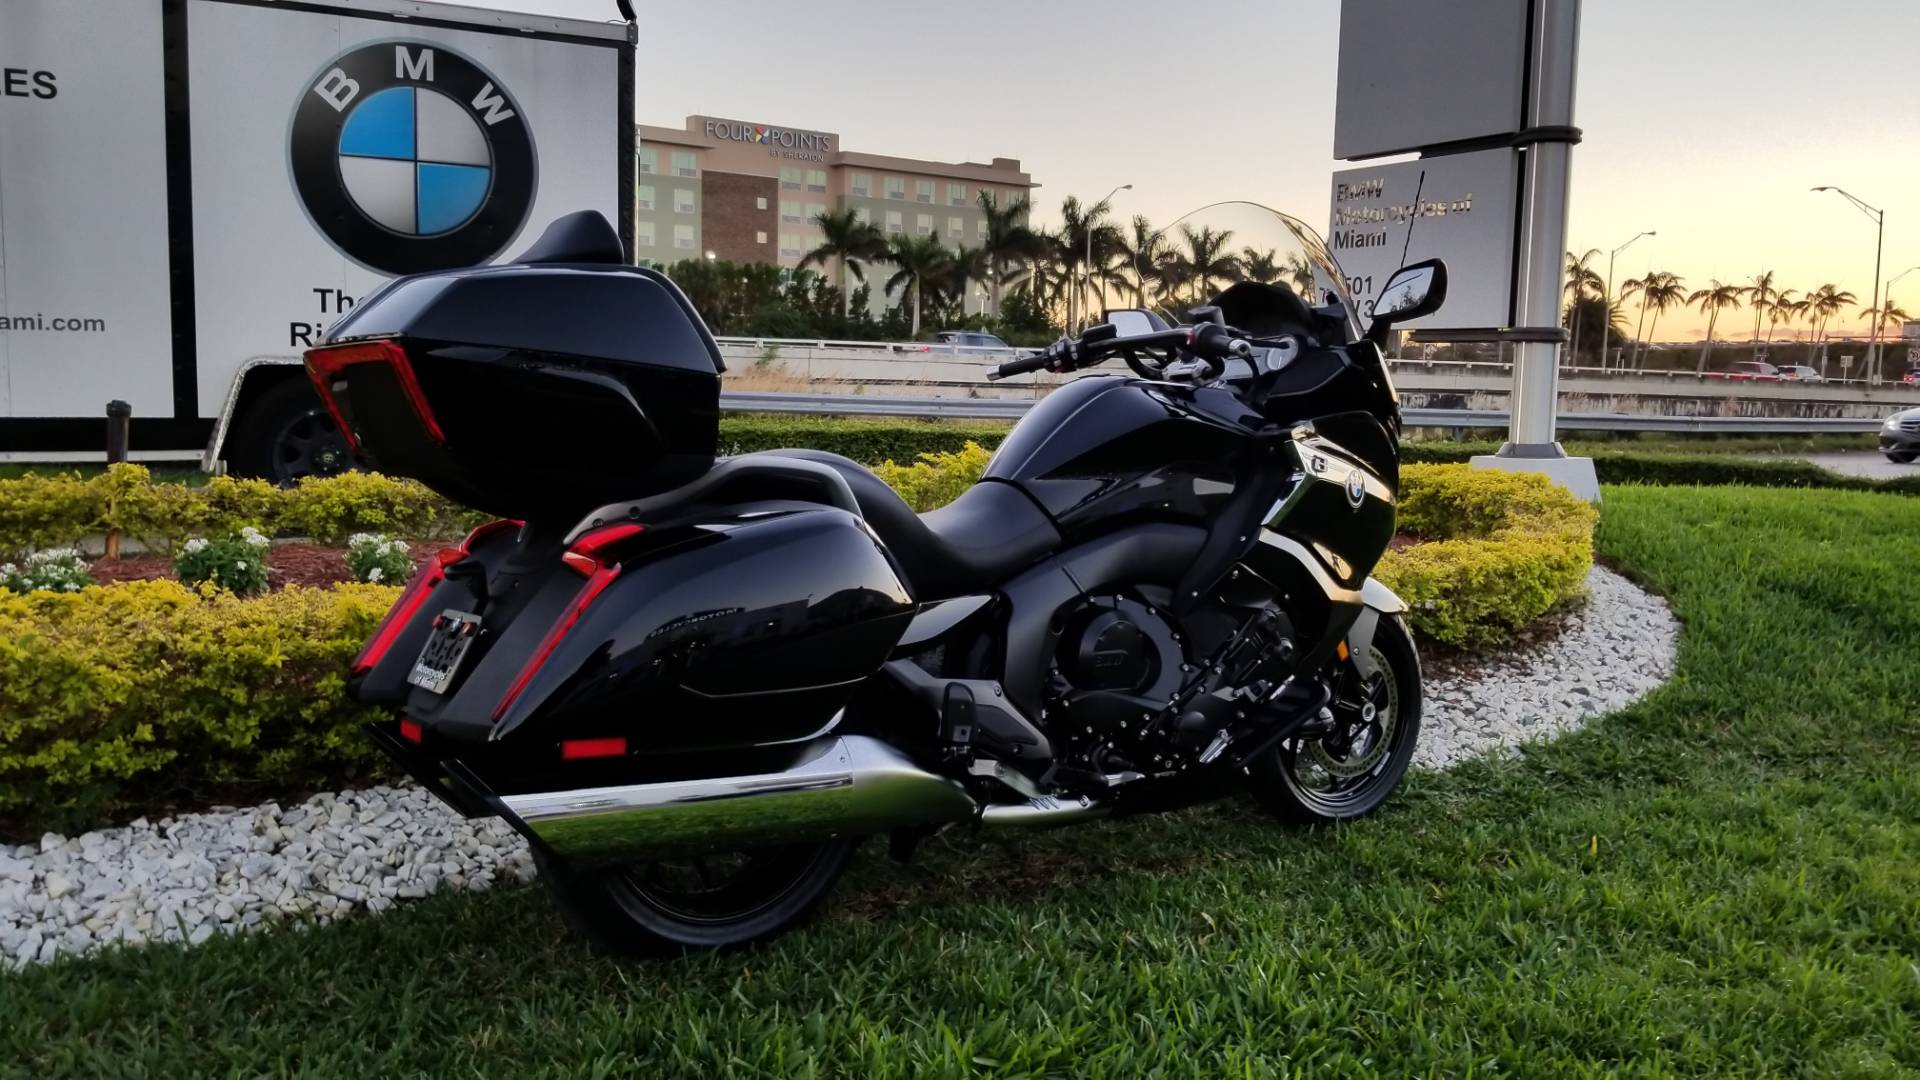 New 2018 BMW K 1600 BGA For Sale, BMW K 1600BGA For Sale, BMW Motorcycle K1600BGA, new BMW Motorcycle, 1600, BAGGER, BMW, GRAND AMERICA